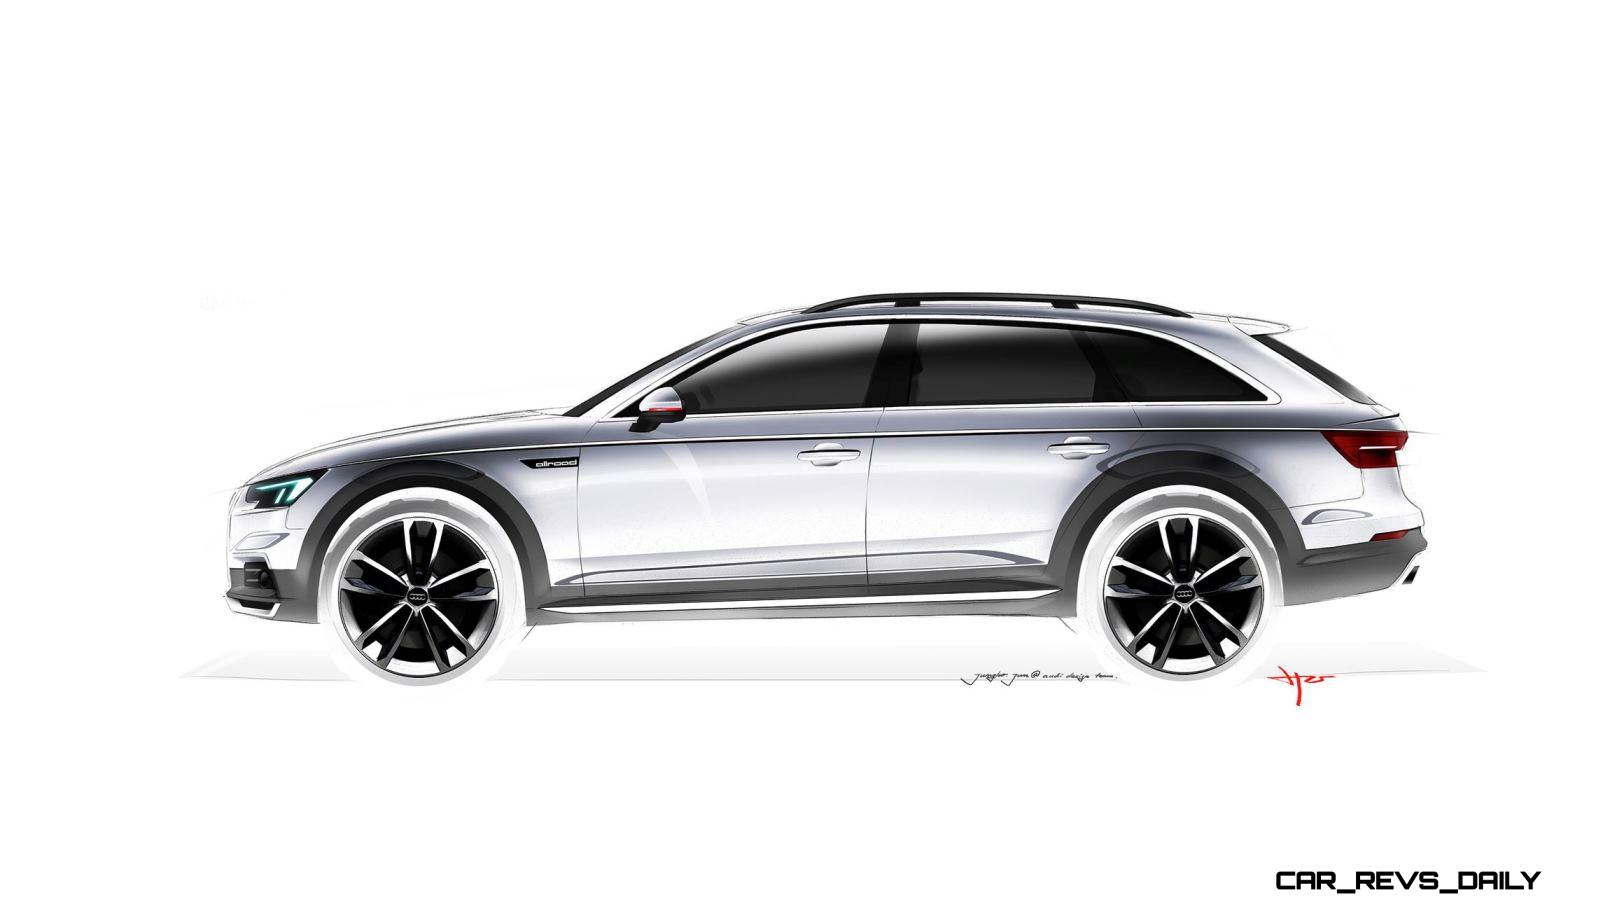 2017 Audi A4 Allroad besides Power Rangers Coloring Sheet moreover 4B0947415A moreover 1182 besides 4G8075111. on audi q5 style